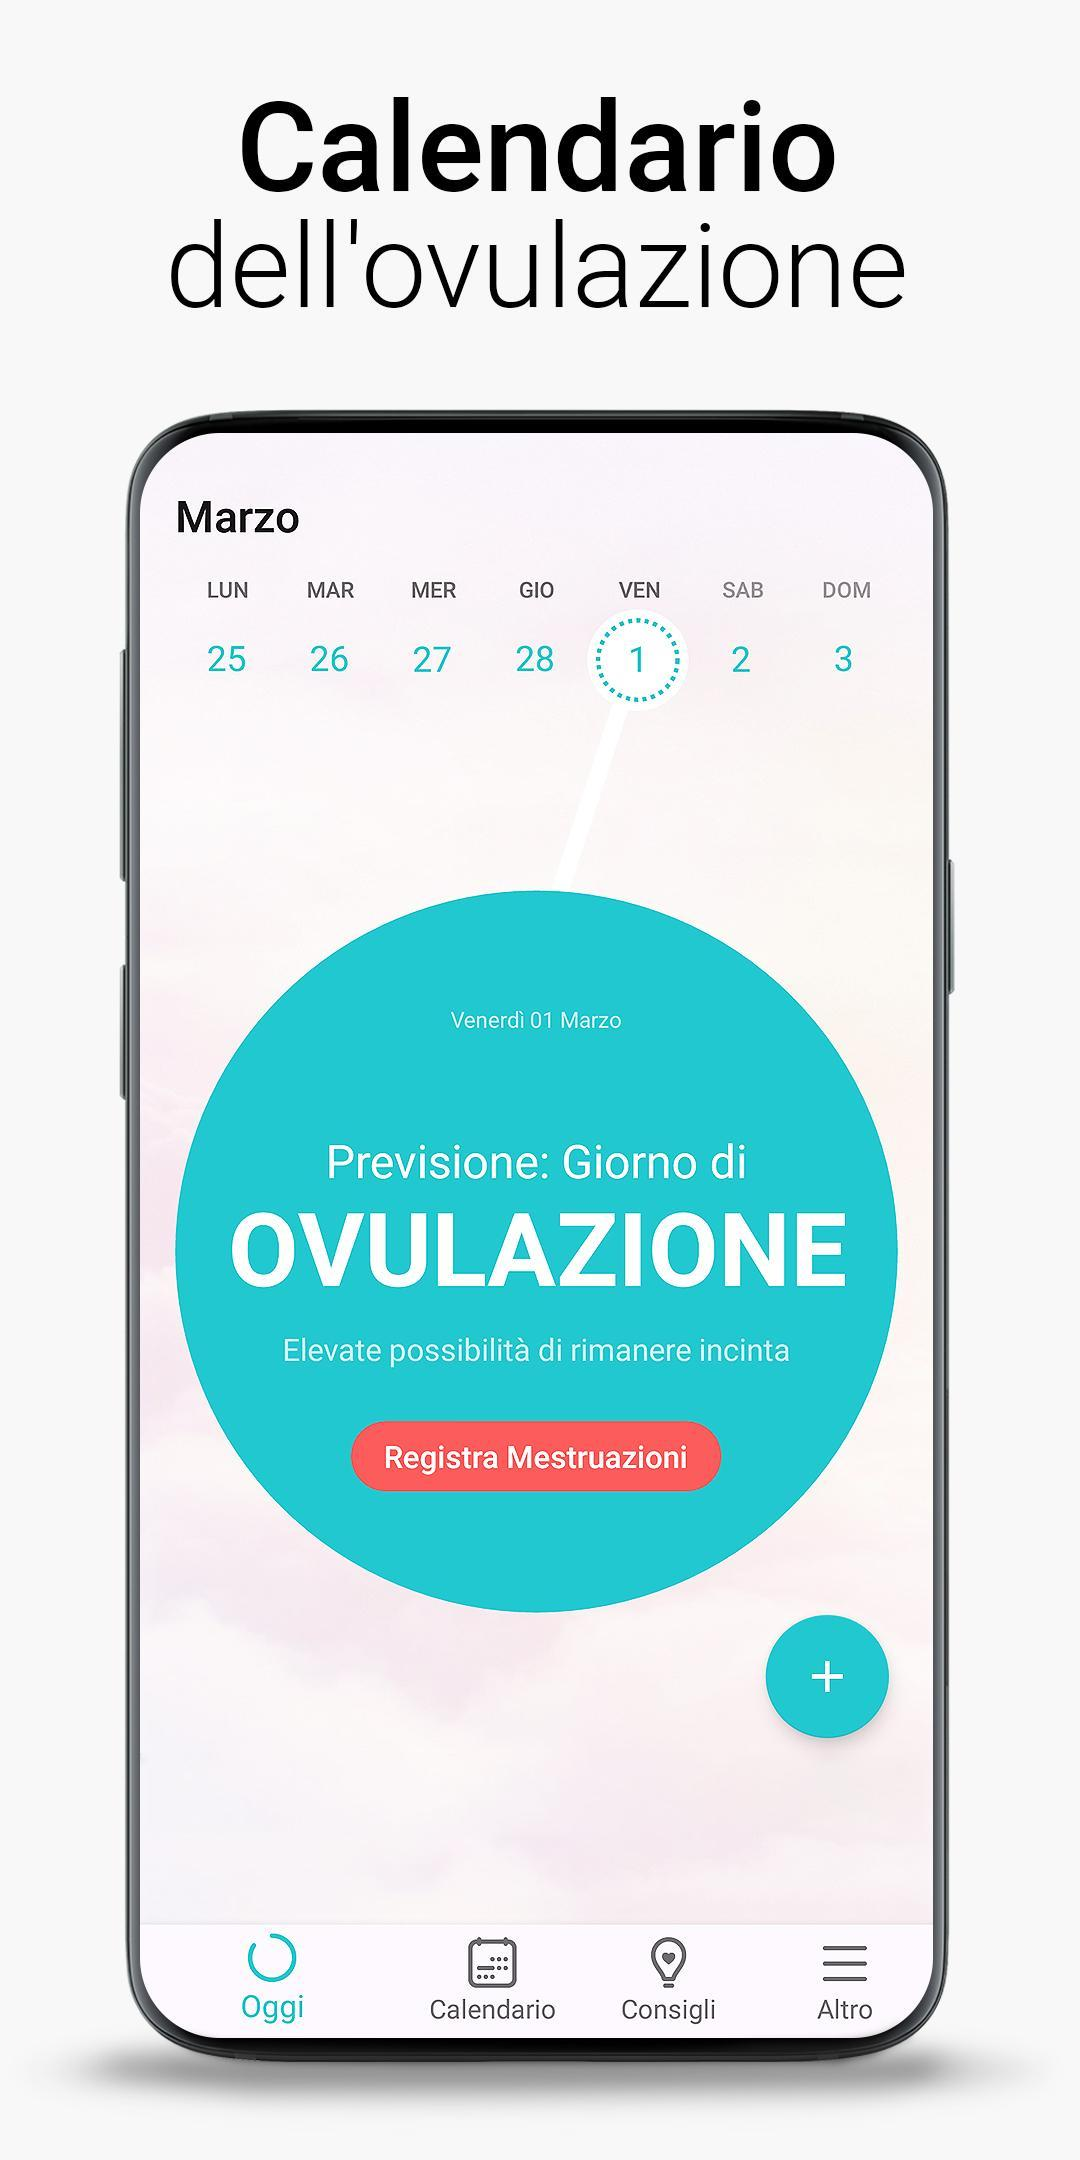 Calendario Di Ovulazione.Calendario Mestruale Ovulazione E Fertilita Flo For